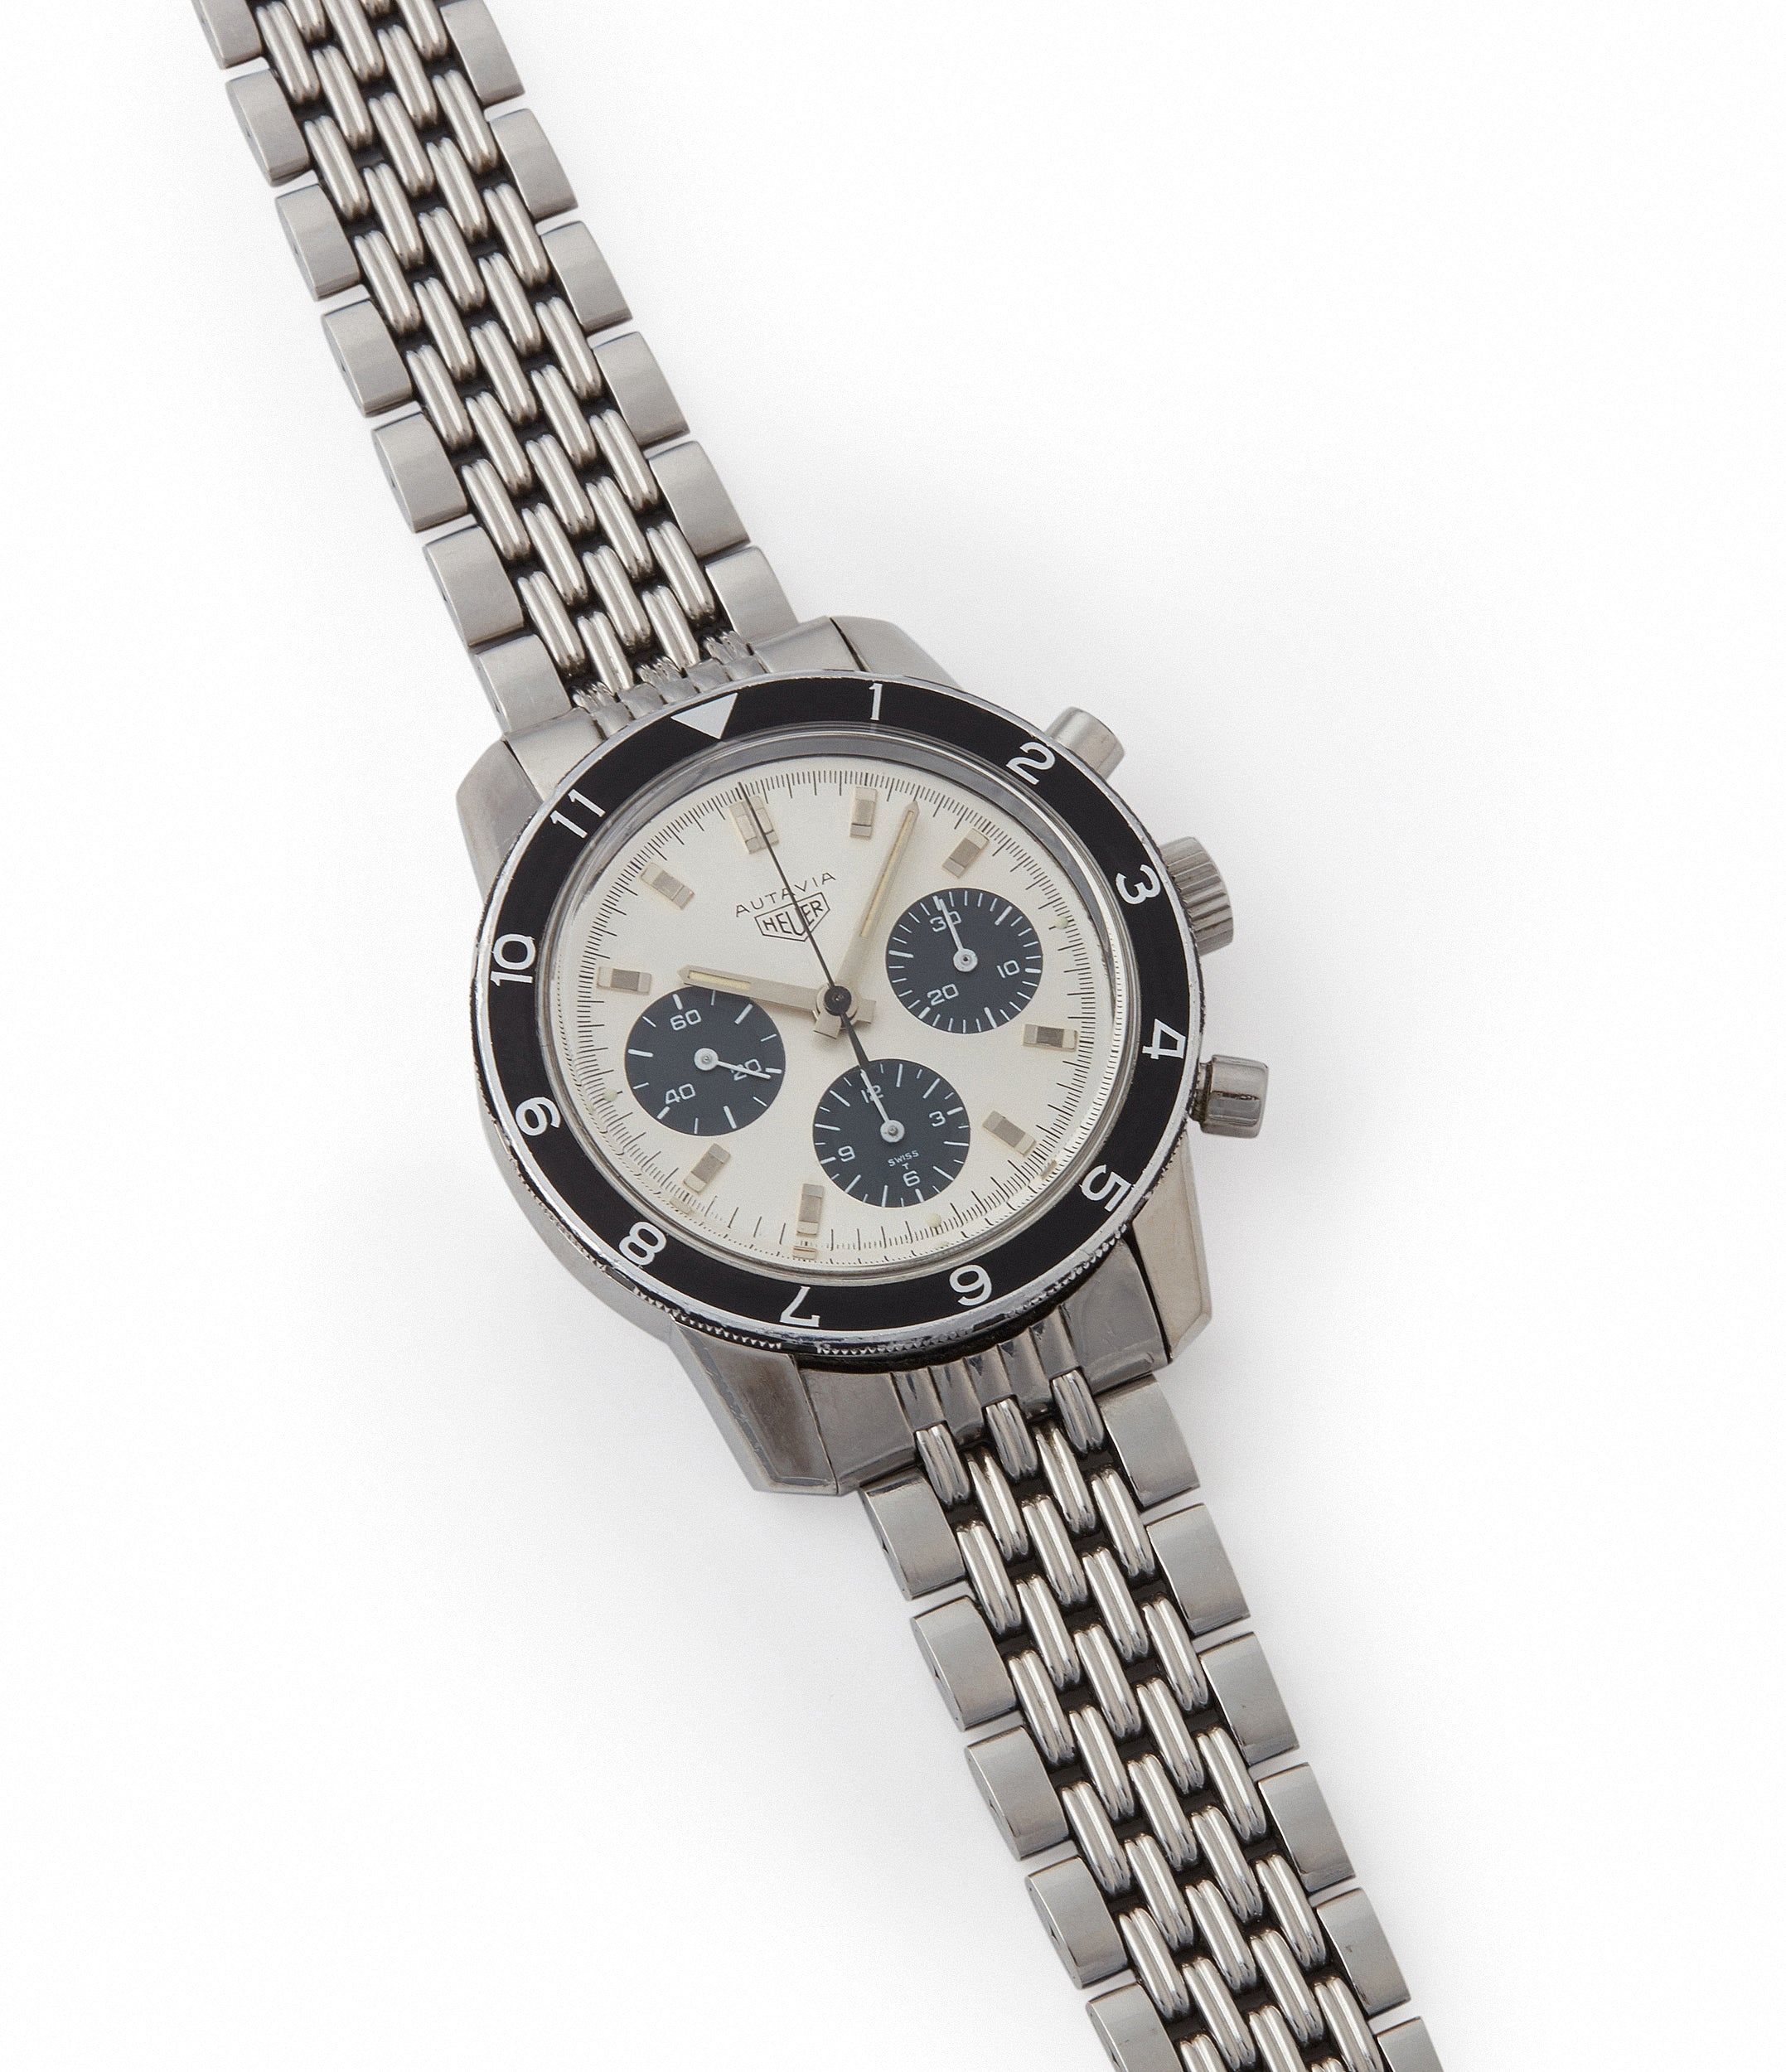 selling vintage Heuer Autavia 2446 C SN silver dial rare chronograph test dial Valjoux 72 watch